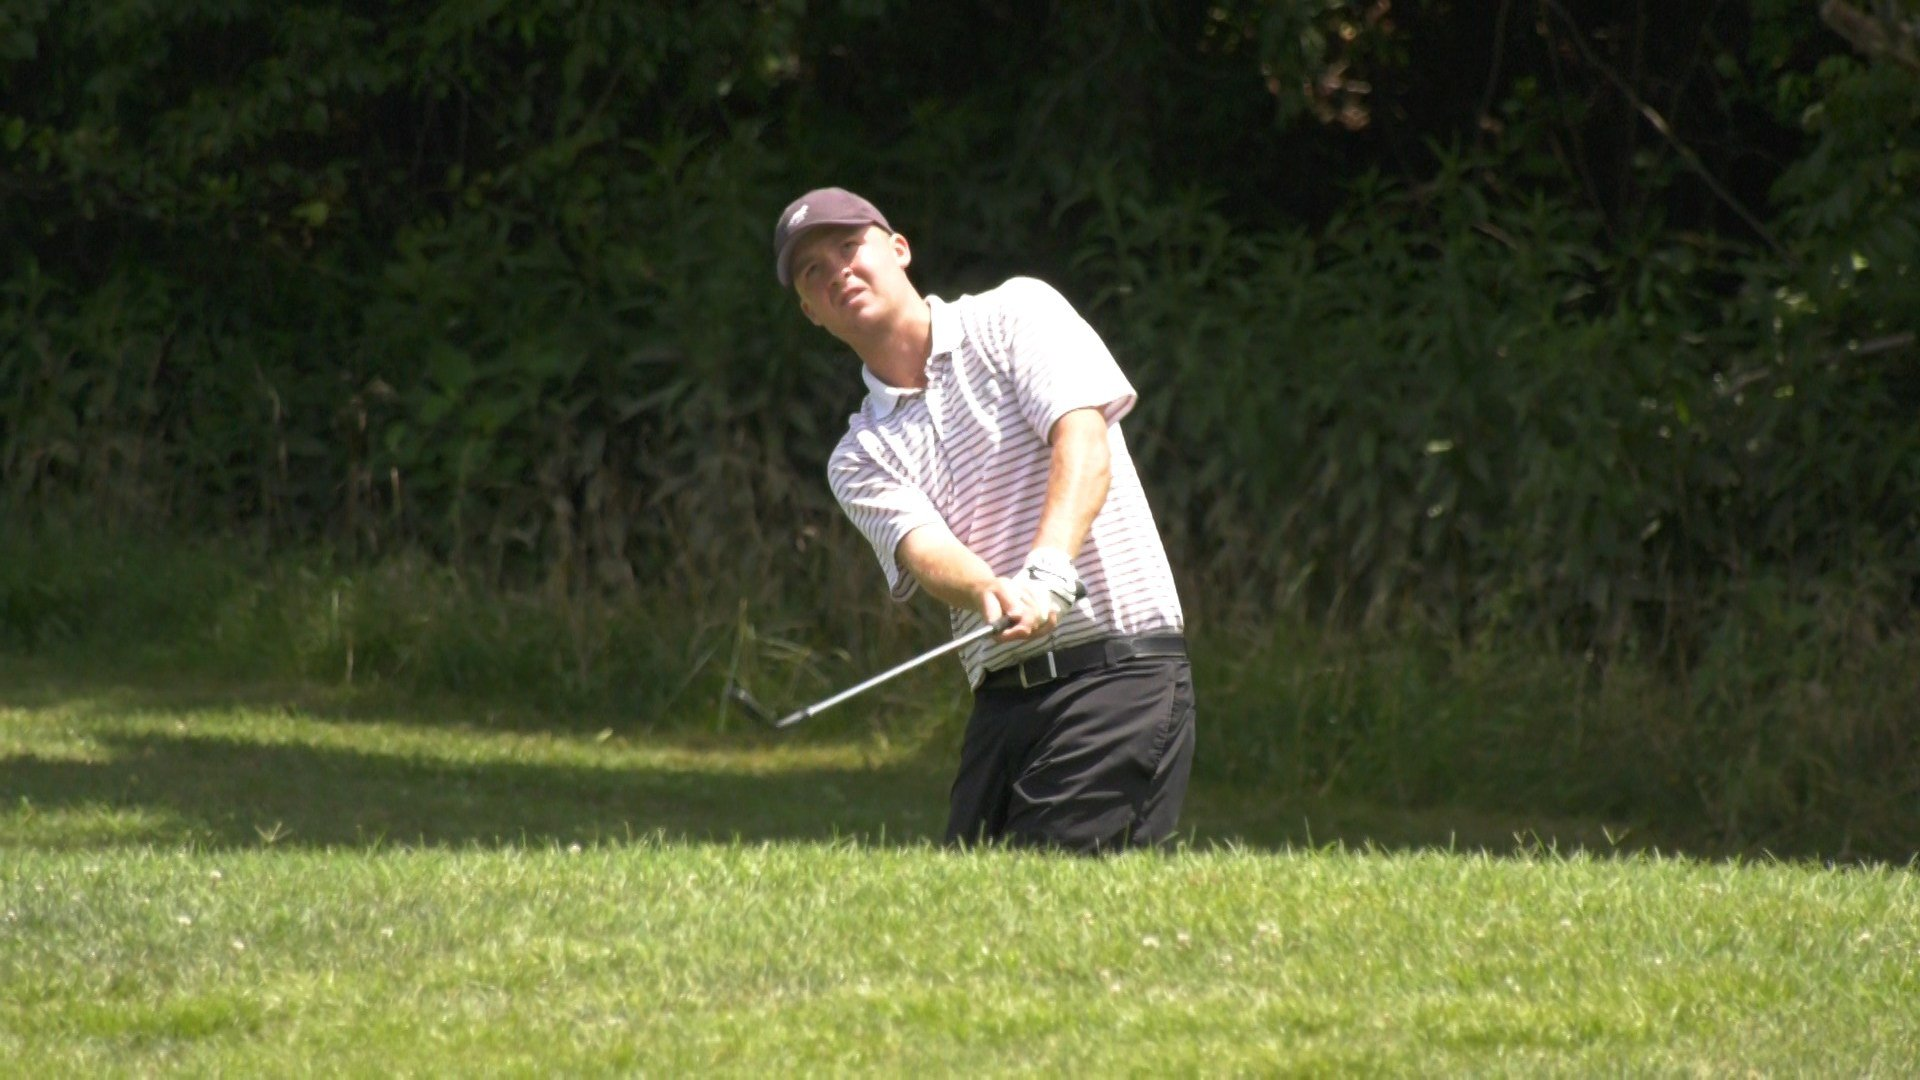 Taylor Ratliff shot back-to-back 69's and leads the City Championship